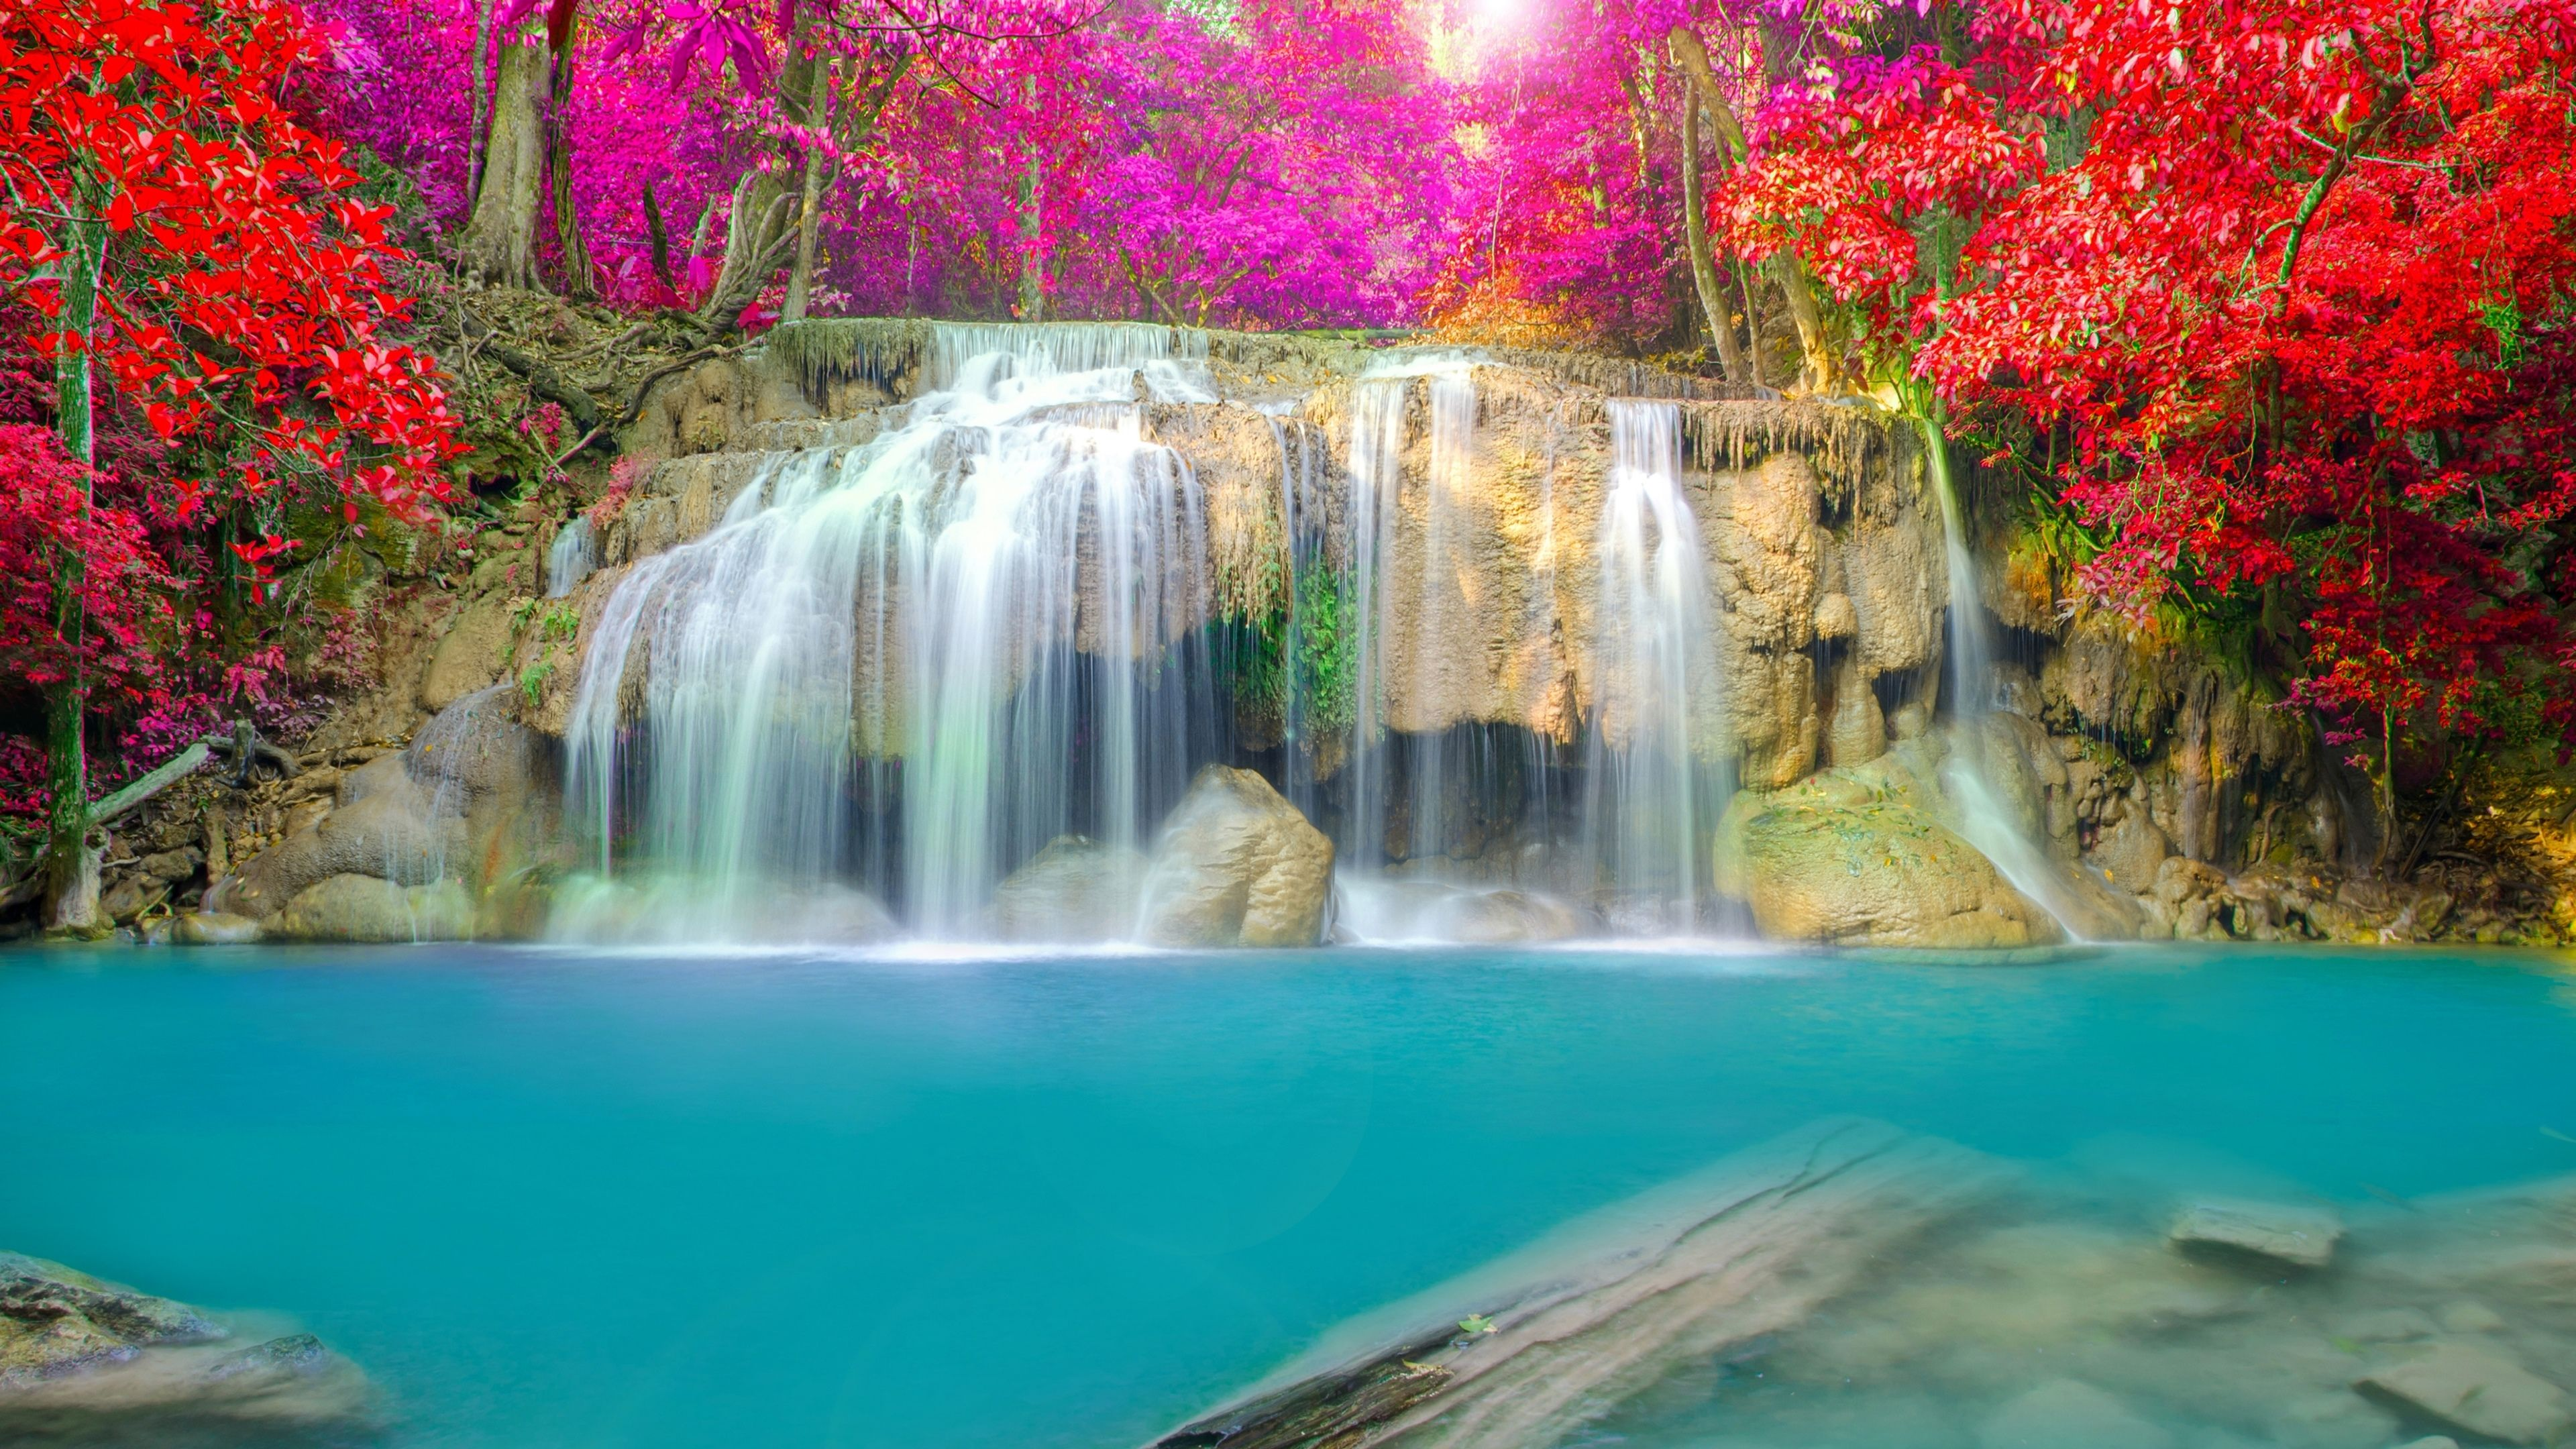 Waterfall Thailand Erawan Falls Erawan National Park 4k Waterfall Wallpaper Waterfall Scenery Landscape Wallpaper